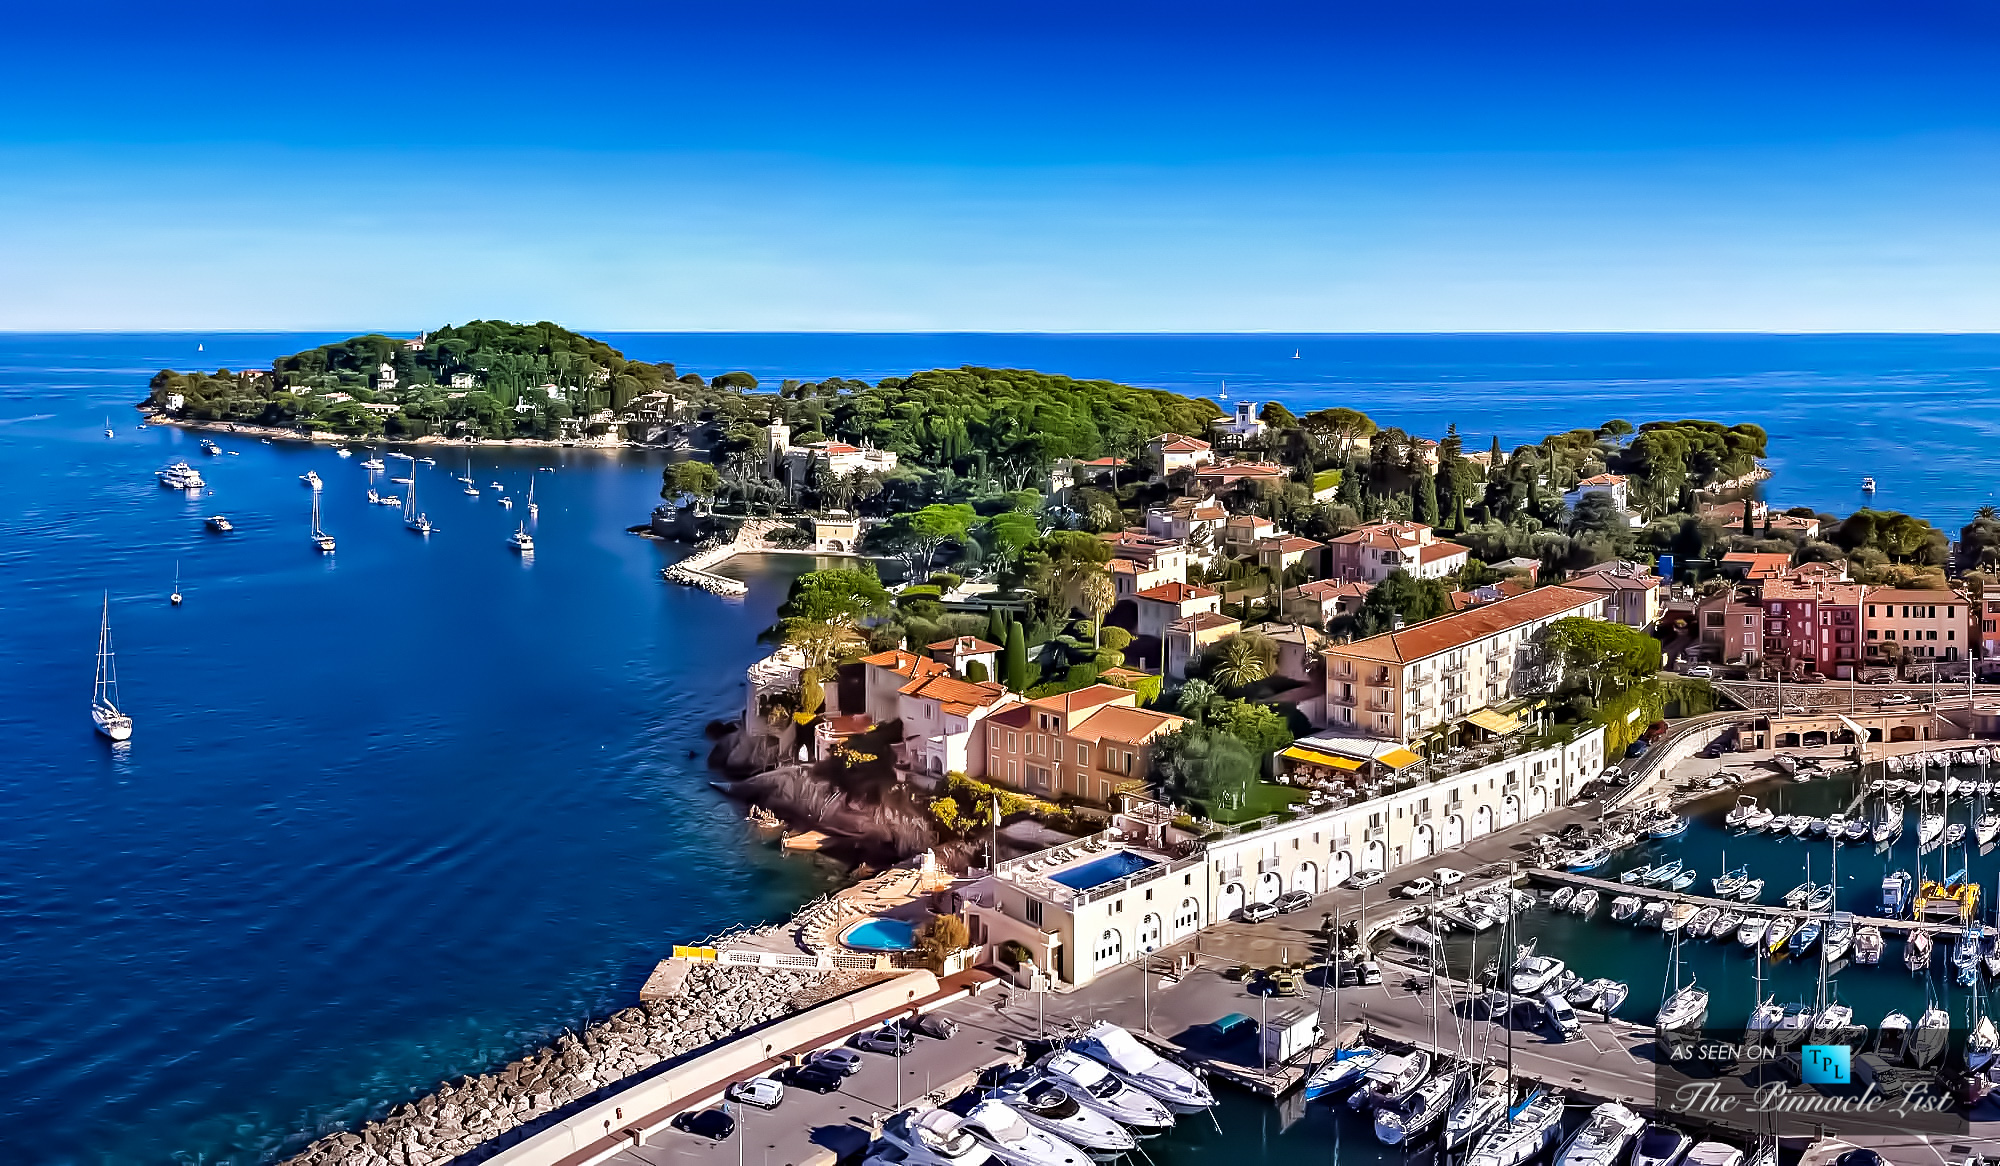 $146 Million - Villa on Claude Vignon Avenue, Saint-Jean-Cap-Ferrat, France - Exceeding $100 Million - The 5 Most Expensive Homes Sold in the World